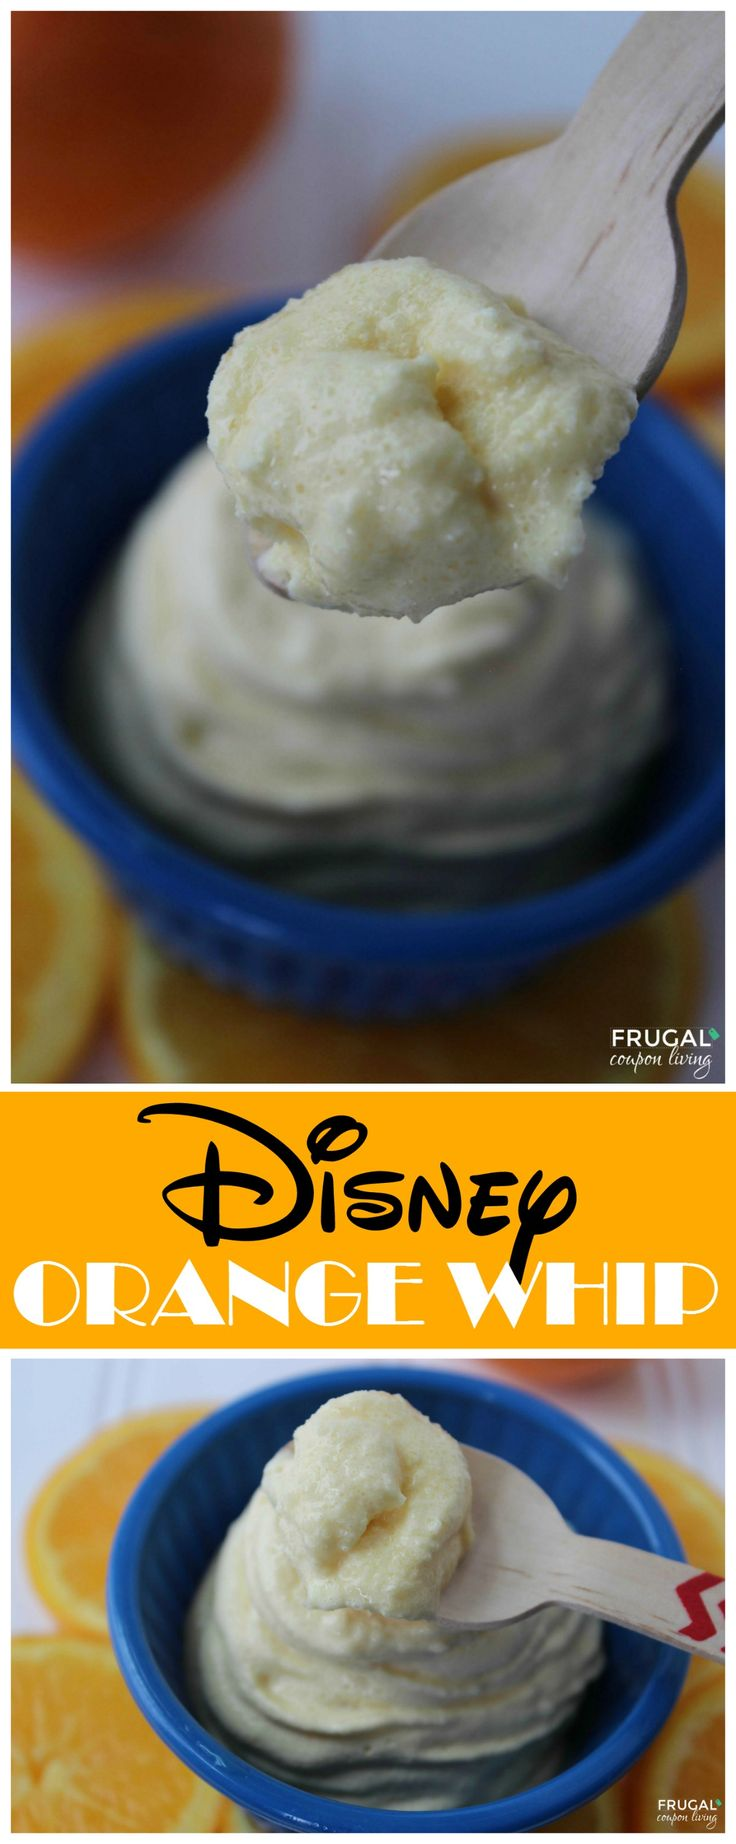 Copycat Disney Orange Whip - Just like the Dole Whip found at Disney World. This recipe is found on Frugal Coupon Living.